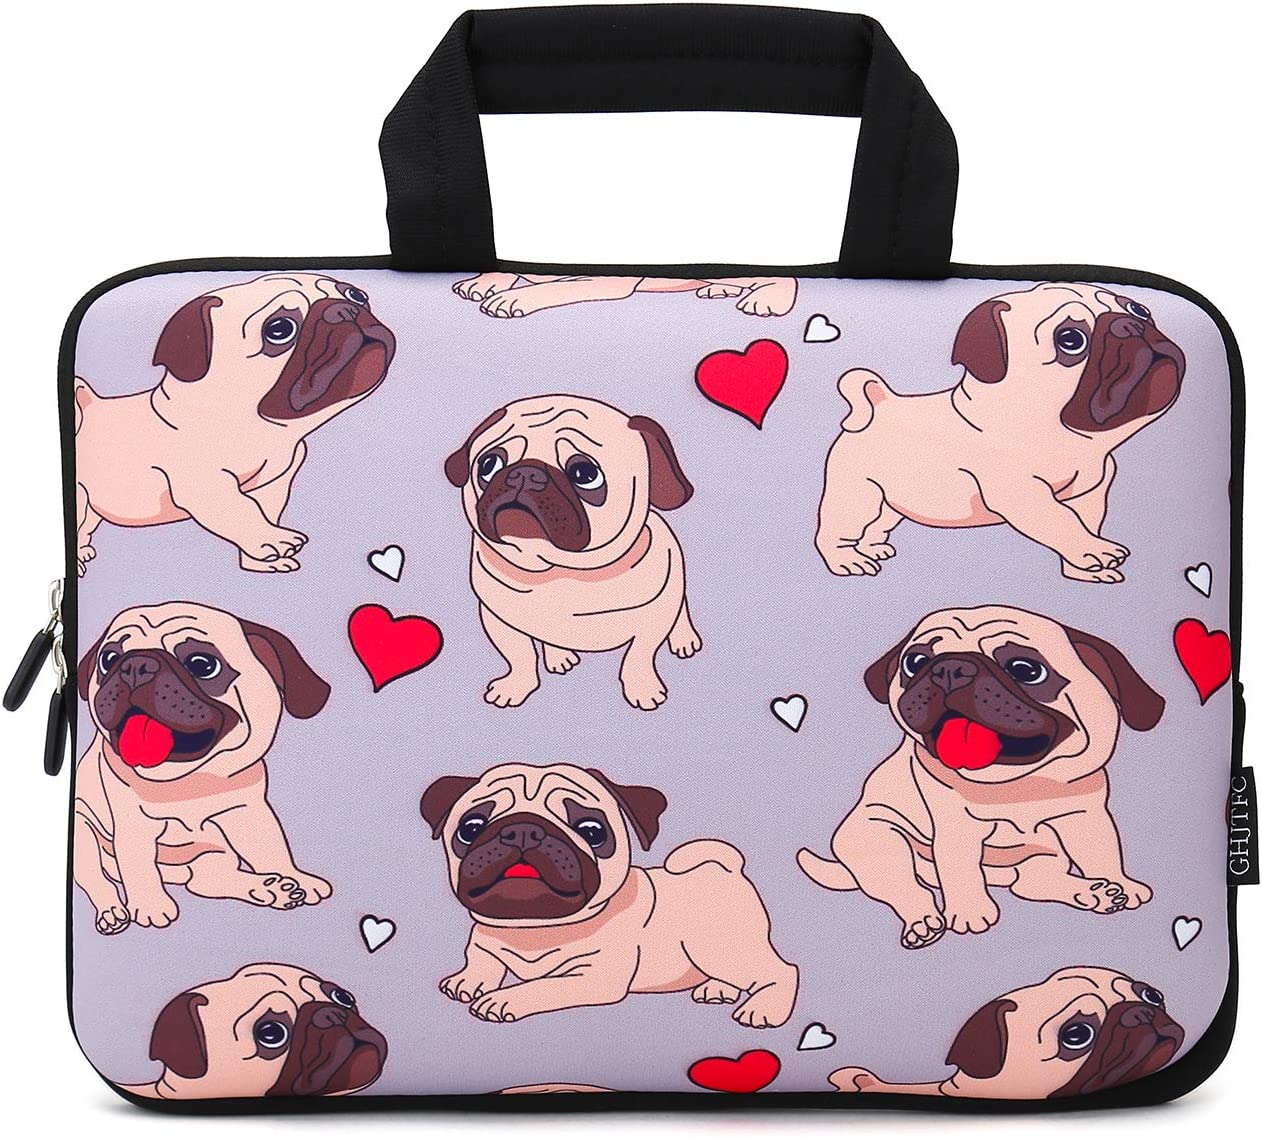 12 Inch Laptop Sleeve Carrying Bag Protective Case Neoprene Sleeve Tote Tablet Cover Notebook Briefcase Bag with Handle for Women Men(Pug,12